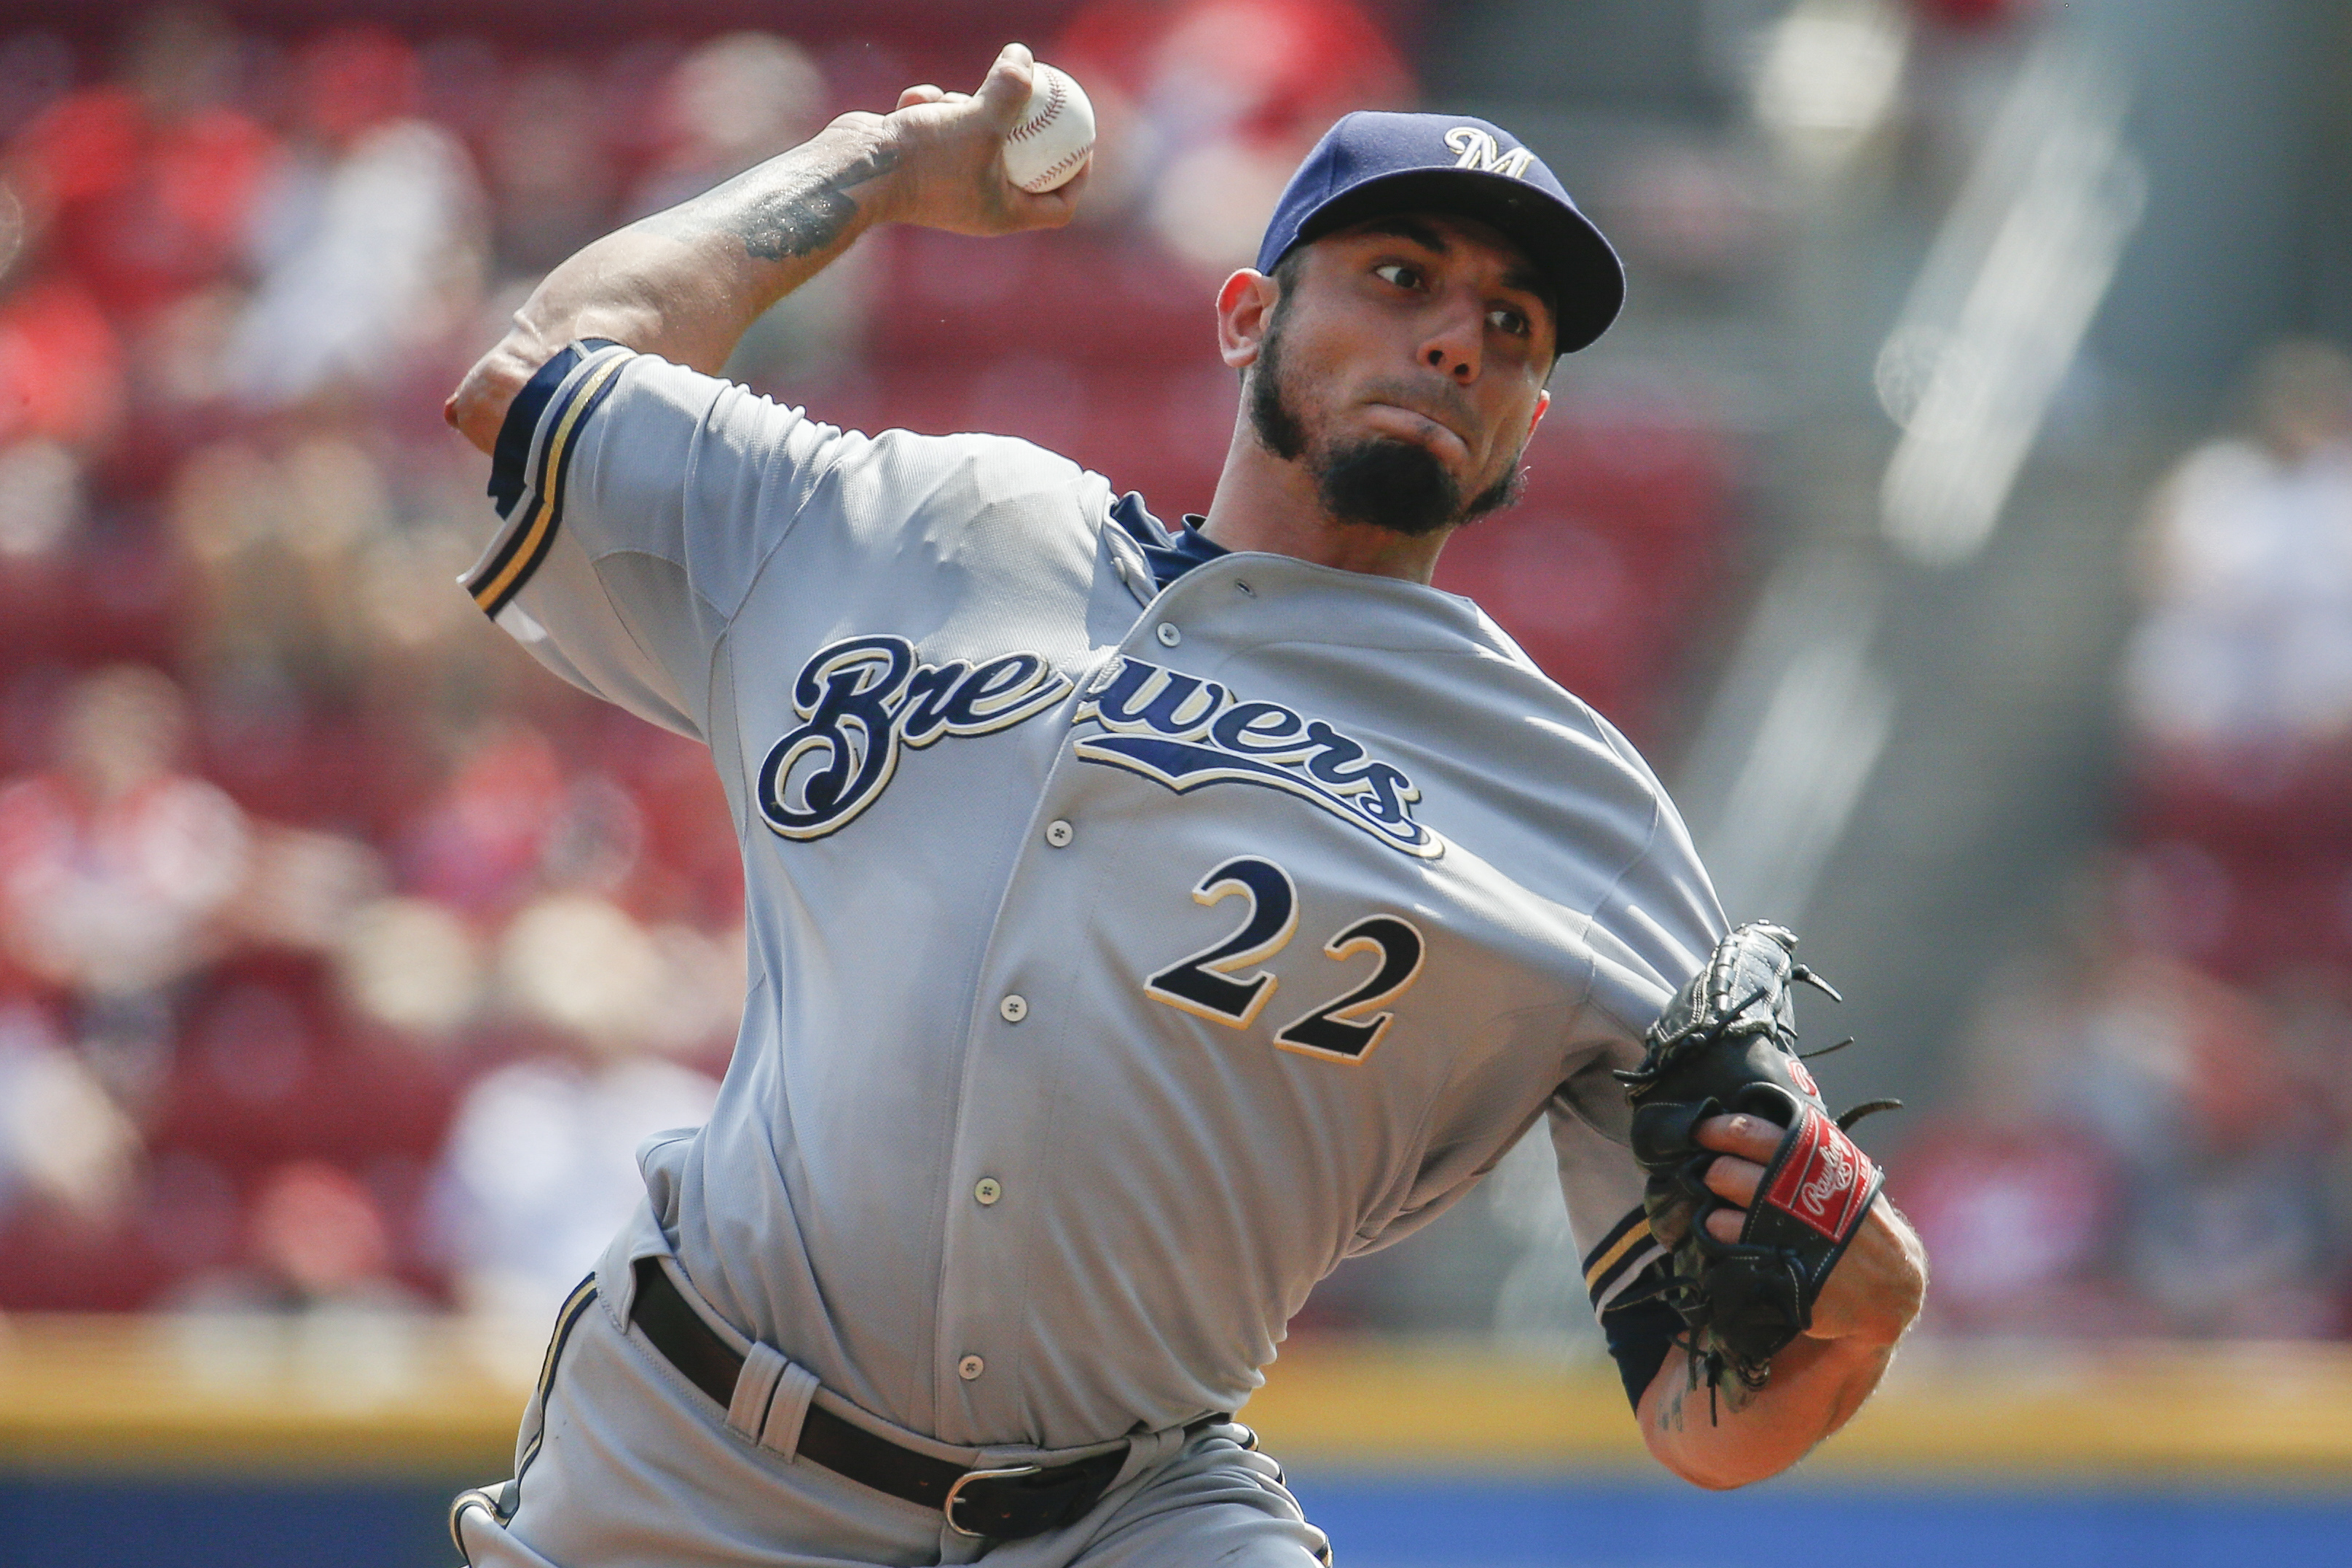 Milwaukee Brewers starting pitcher Matt Garza (22) throws in the inning first in the first game of a baseball doubleheader against the Cincinnati Reds, Saturday, Sept. 5, 2015, in Cincinnati. (AP Photo/John Minchillo)